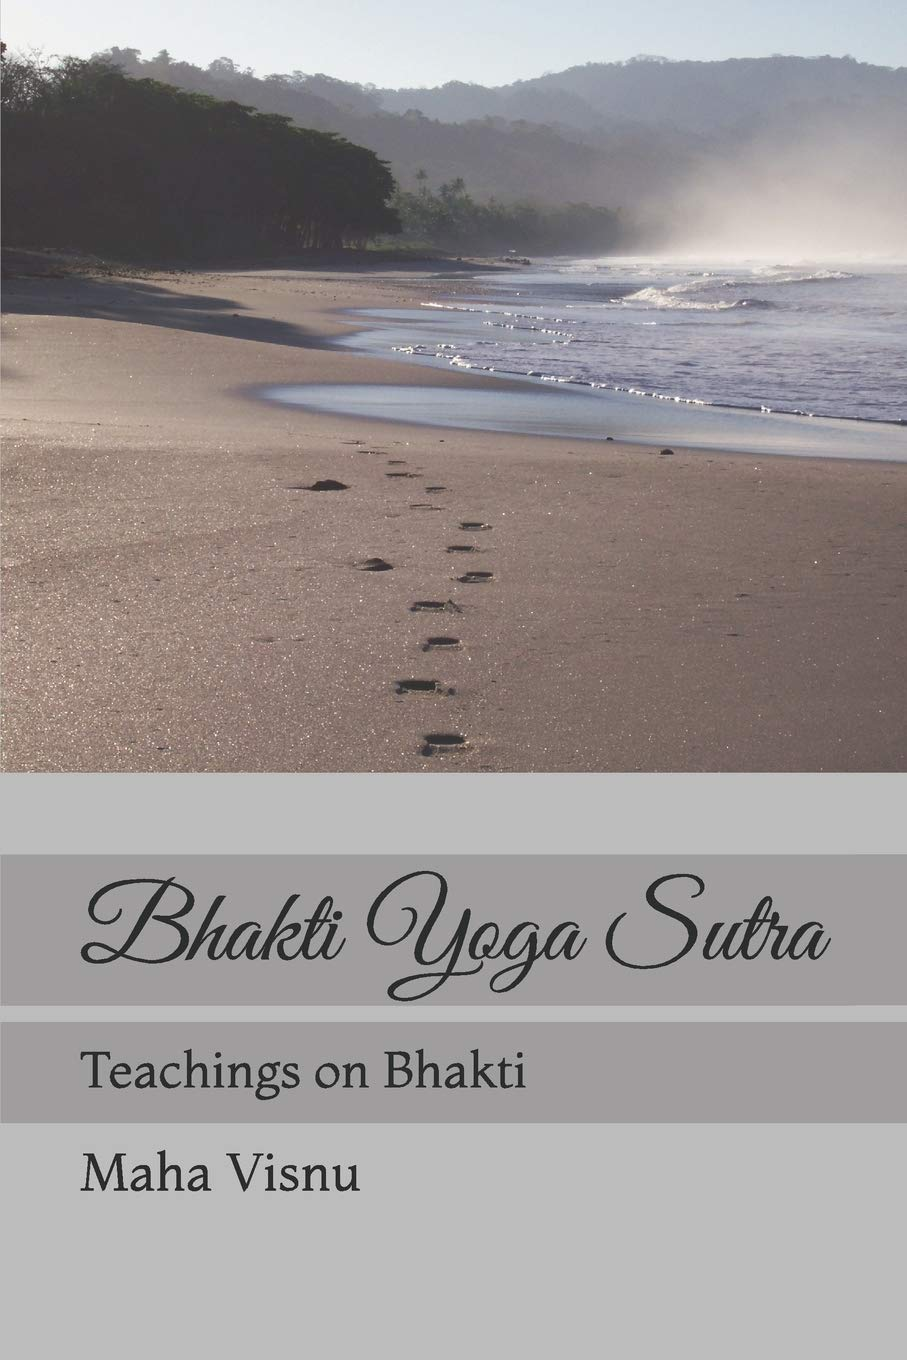 Bhakti Yoga Sutra: Teachings on Bhakti: Amazon.es: Maha ...